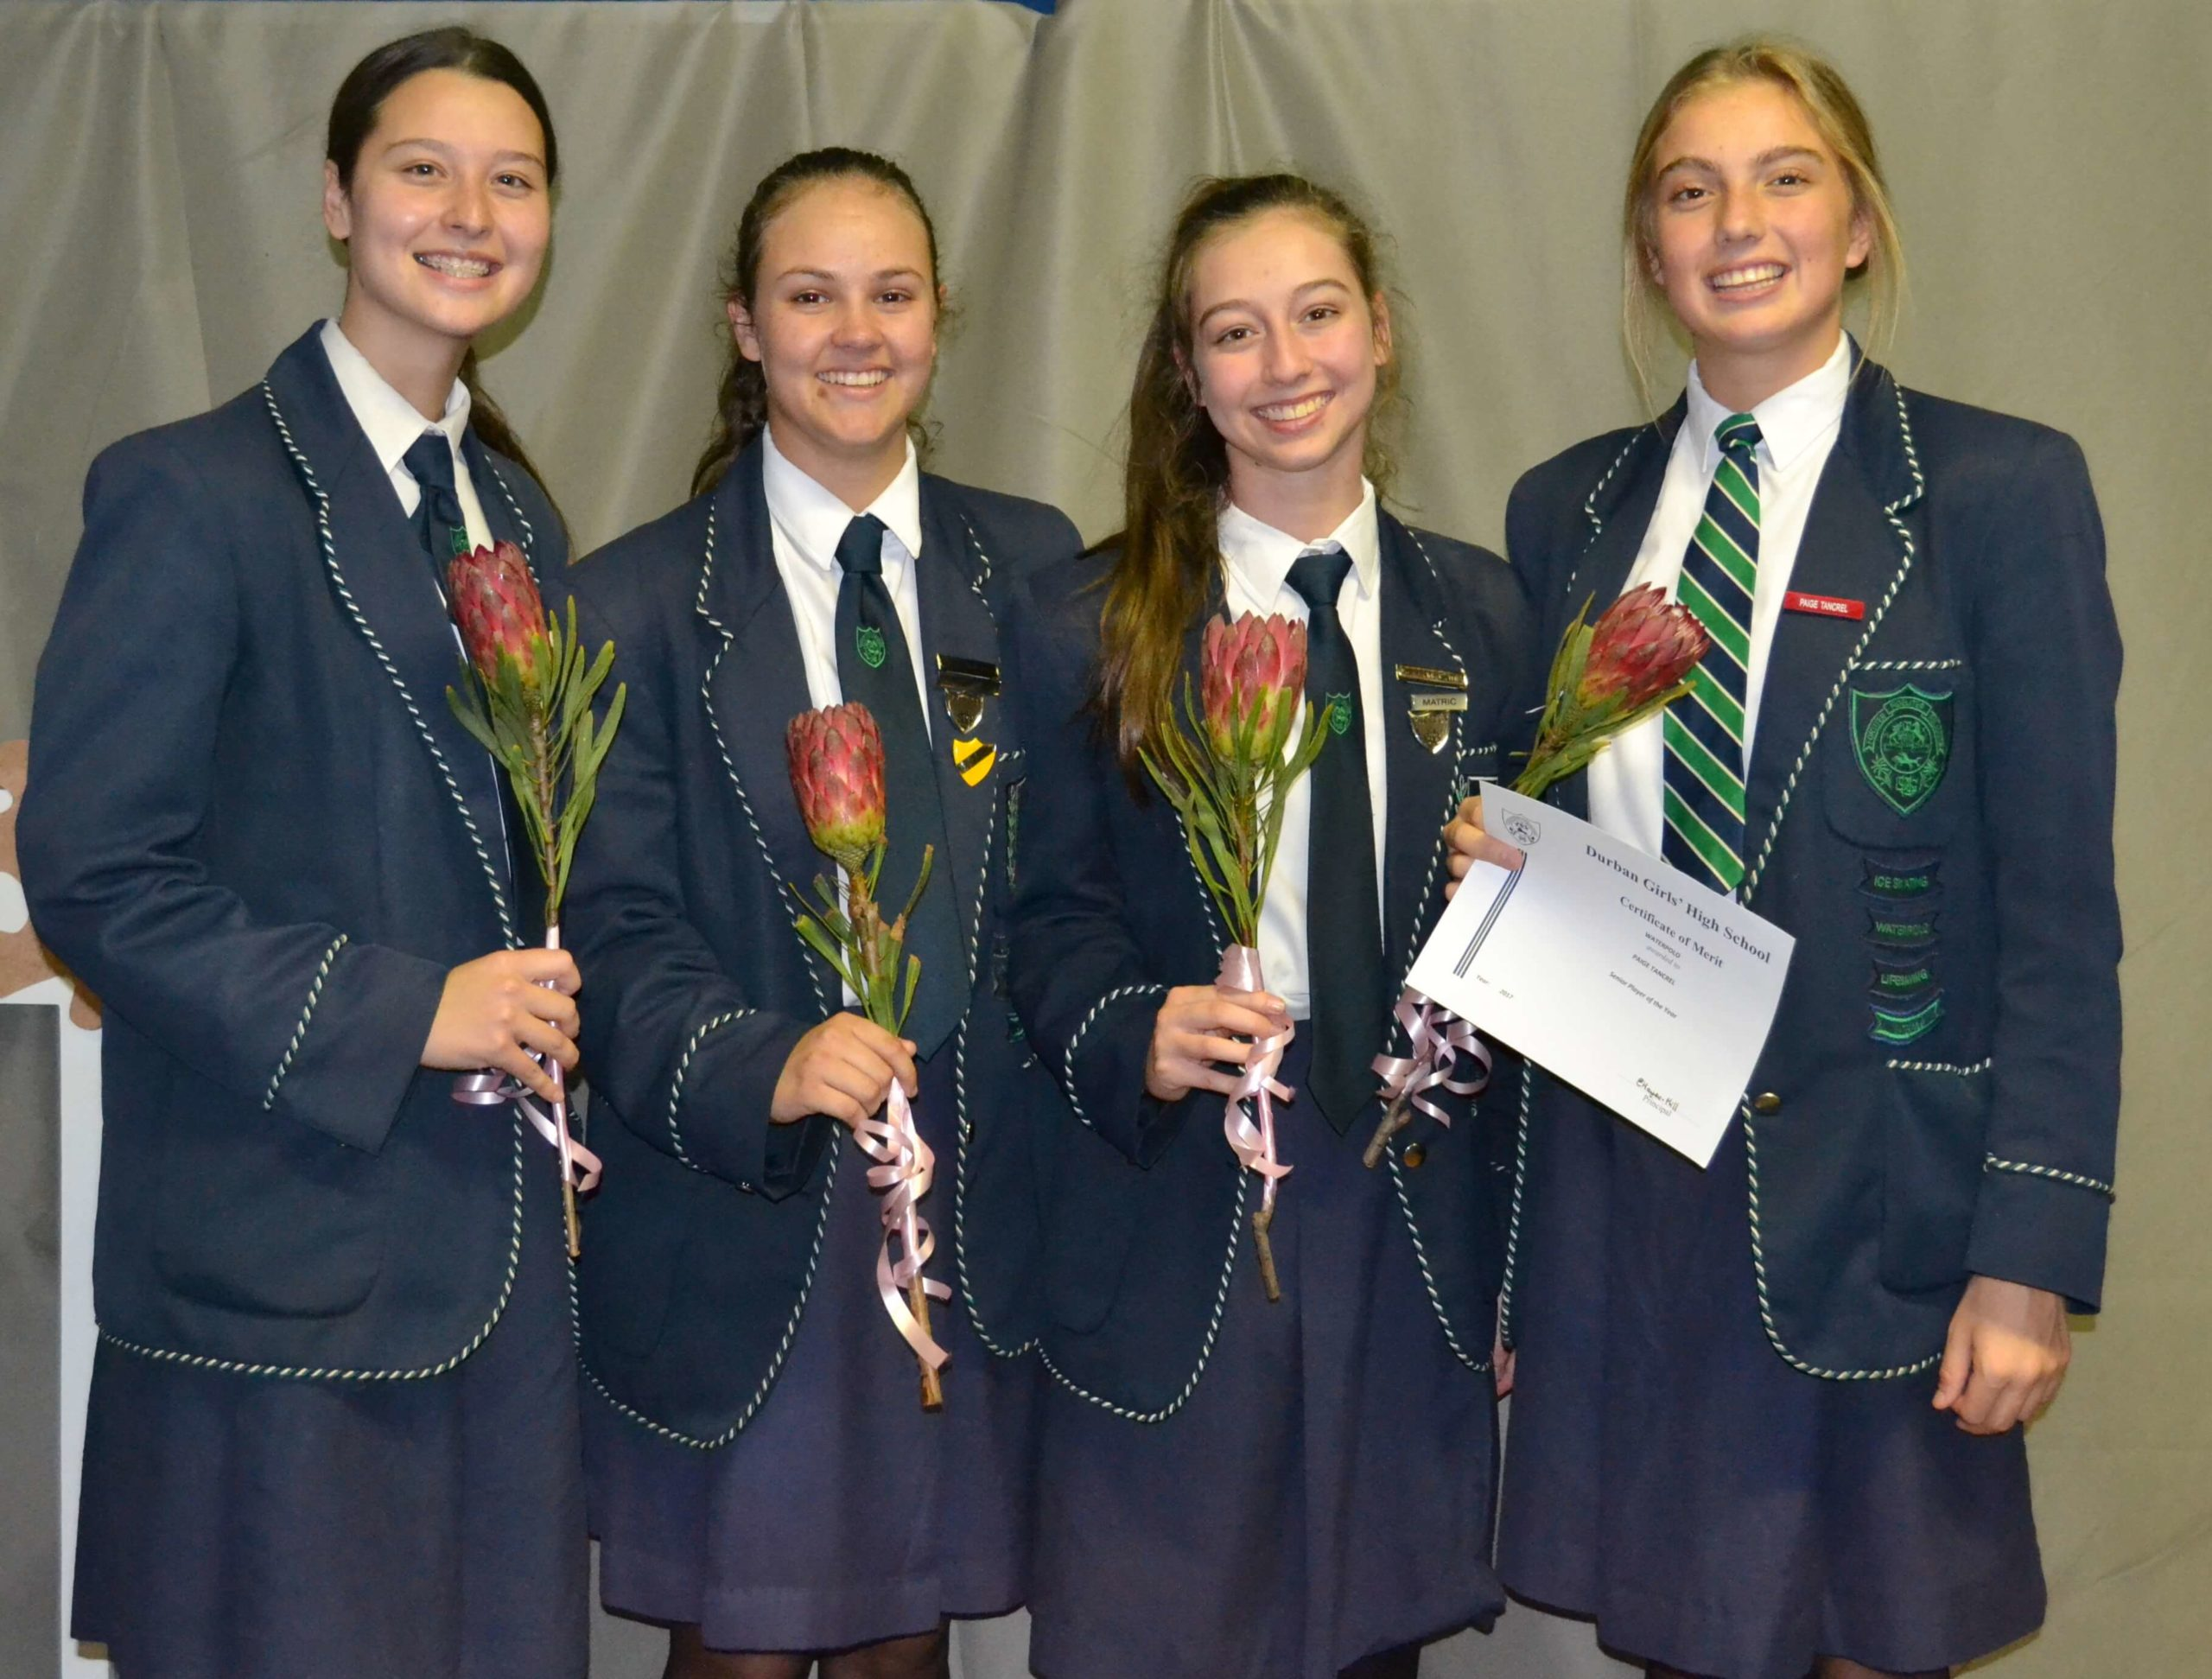 List of Top 10 Private Schools in Durban 2021 [ Durban Girls College is 2nd ]